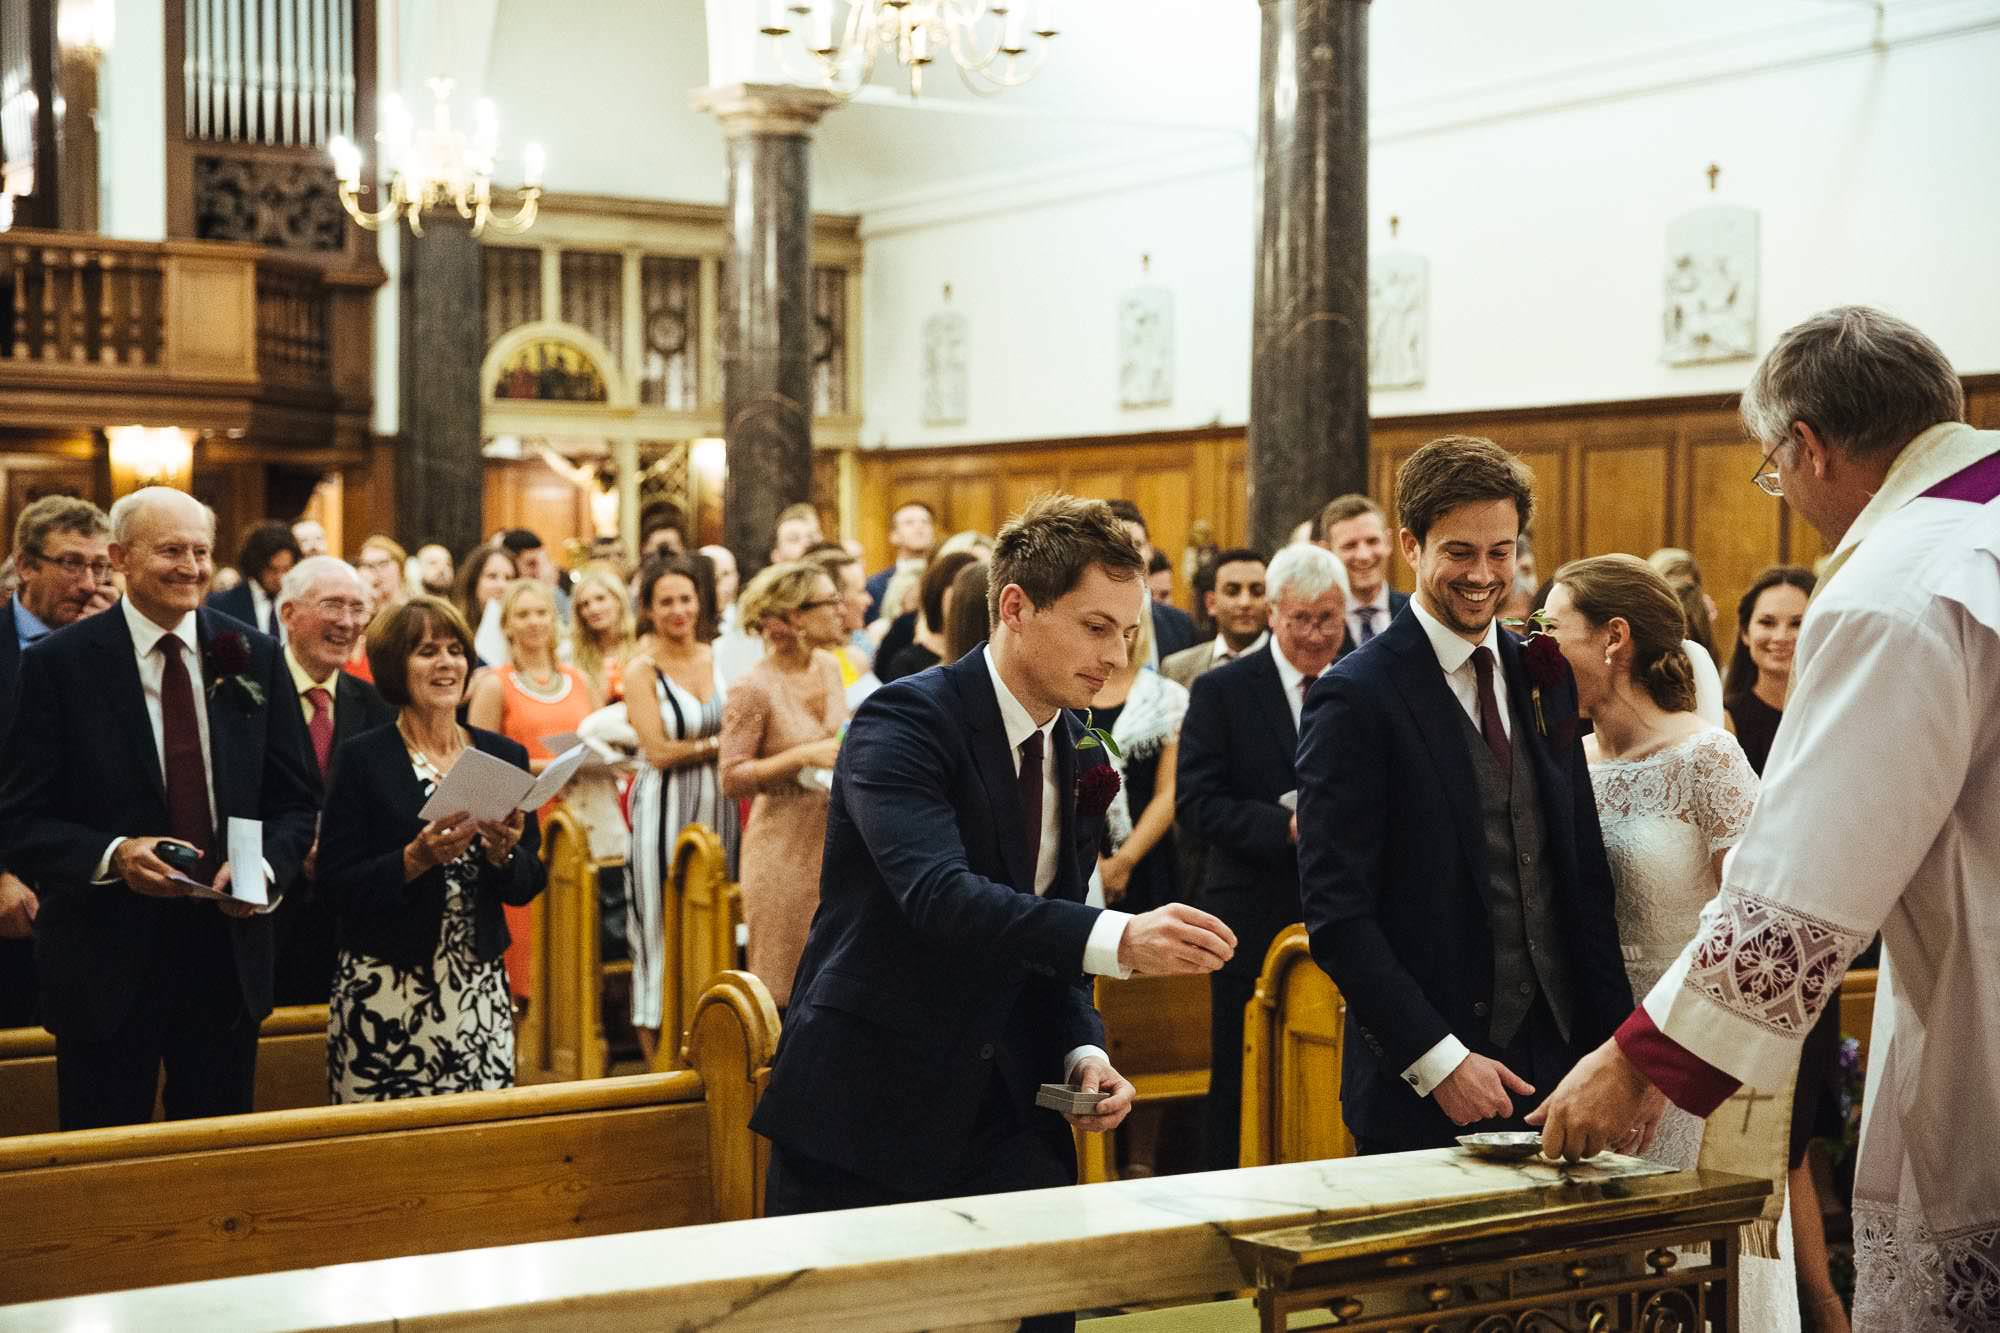 st-mary-moorfields-wedding-26-of-82